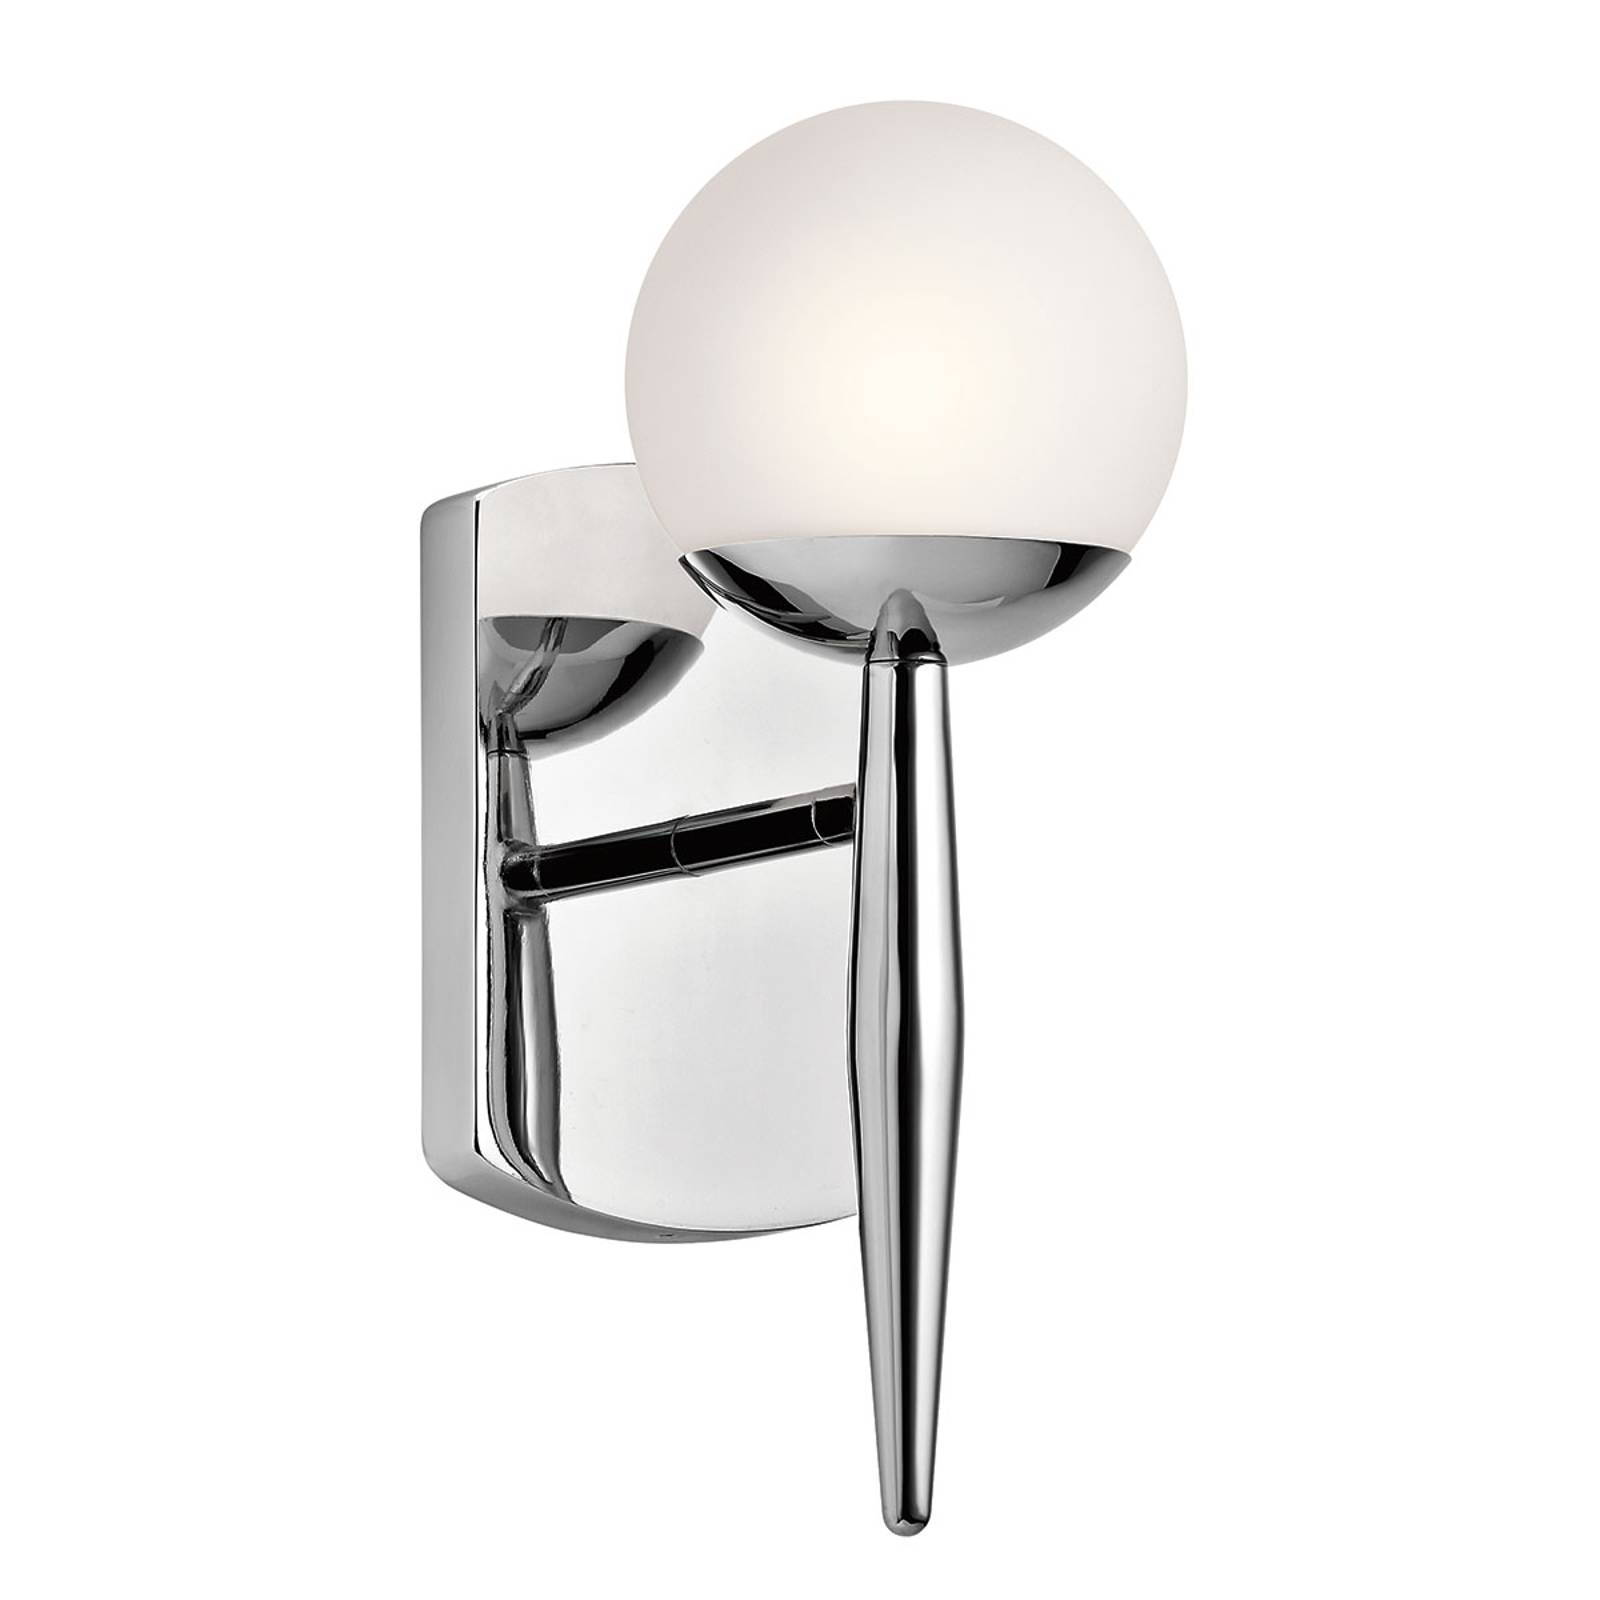 Gracefully designed LED bathroom wall lamp Jasper from KICHLER